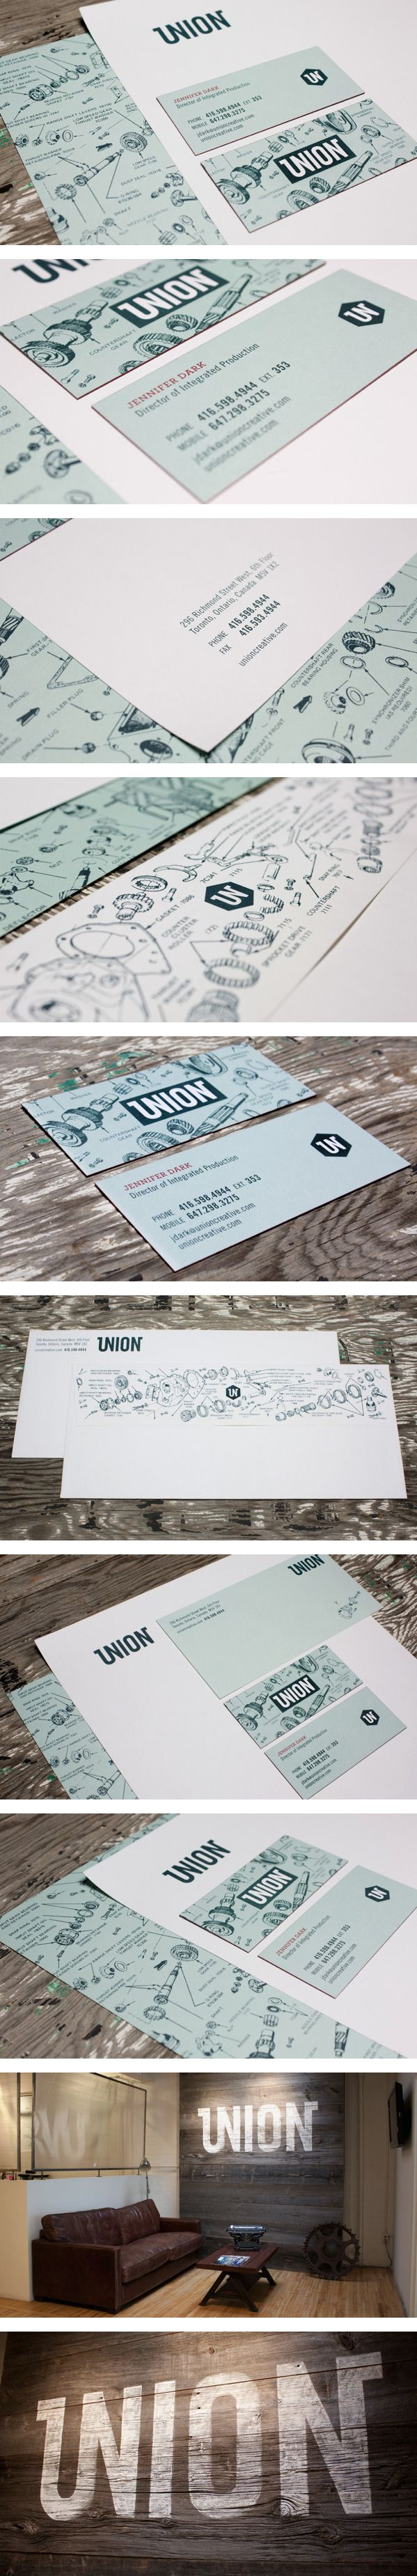 Union by Catherine McLeod